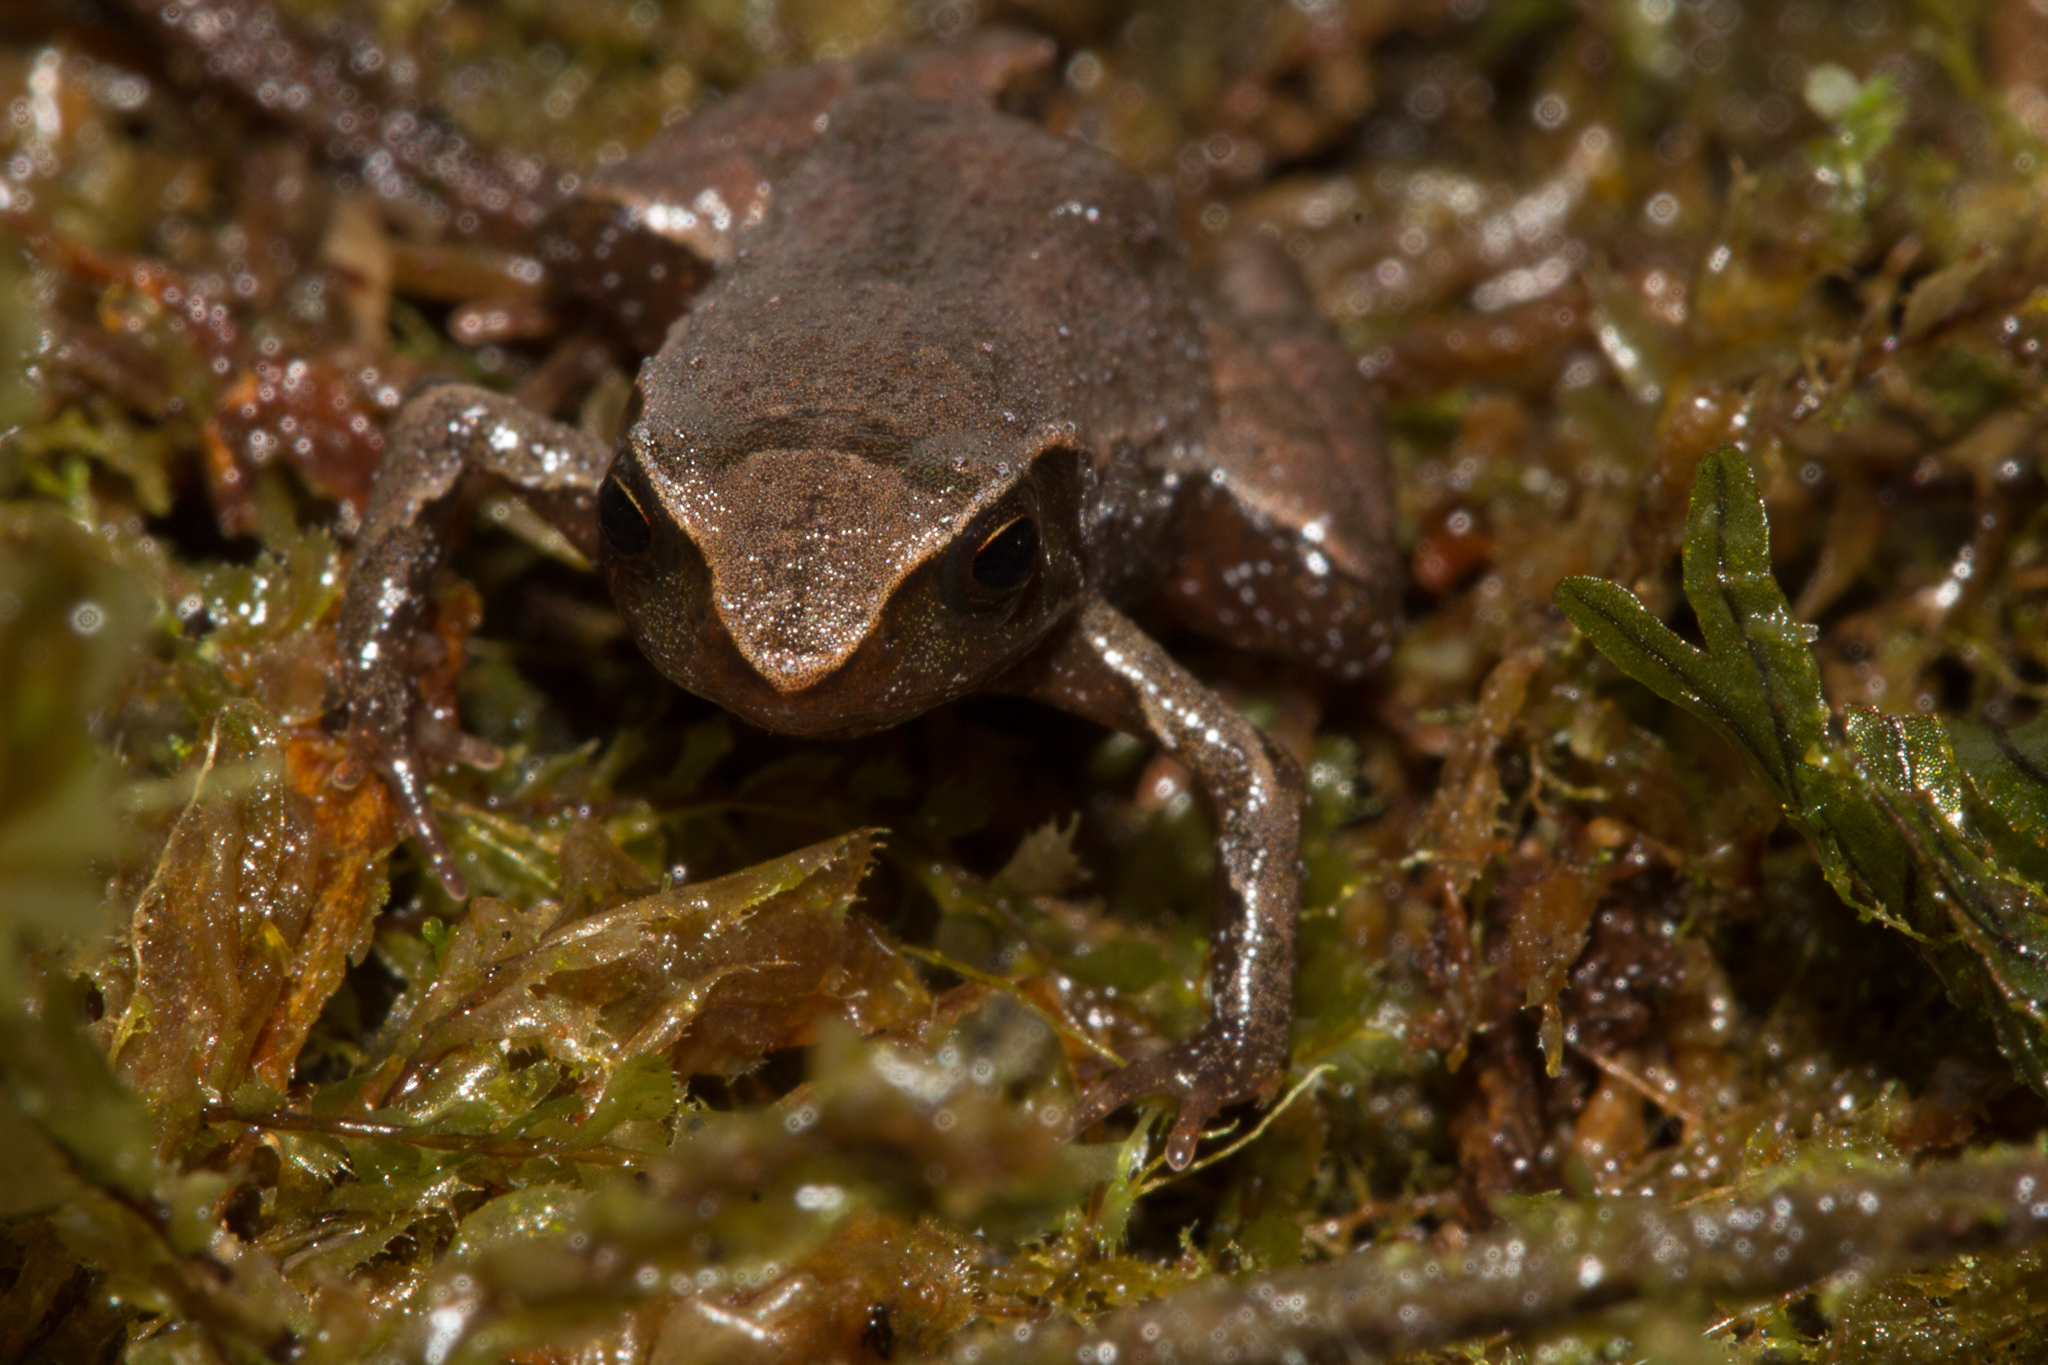 A new species of terrestrial Terrarana frog in the genus Noblella, collected near Camp 4. Photo by Santiago Castroviejo